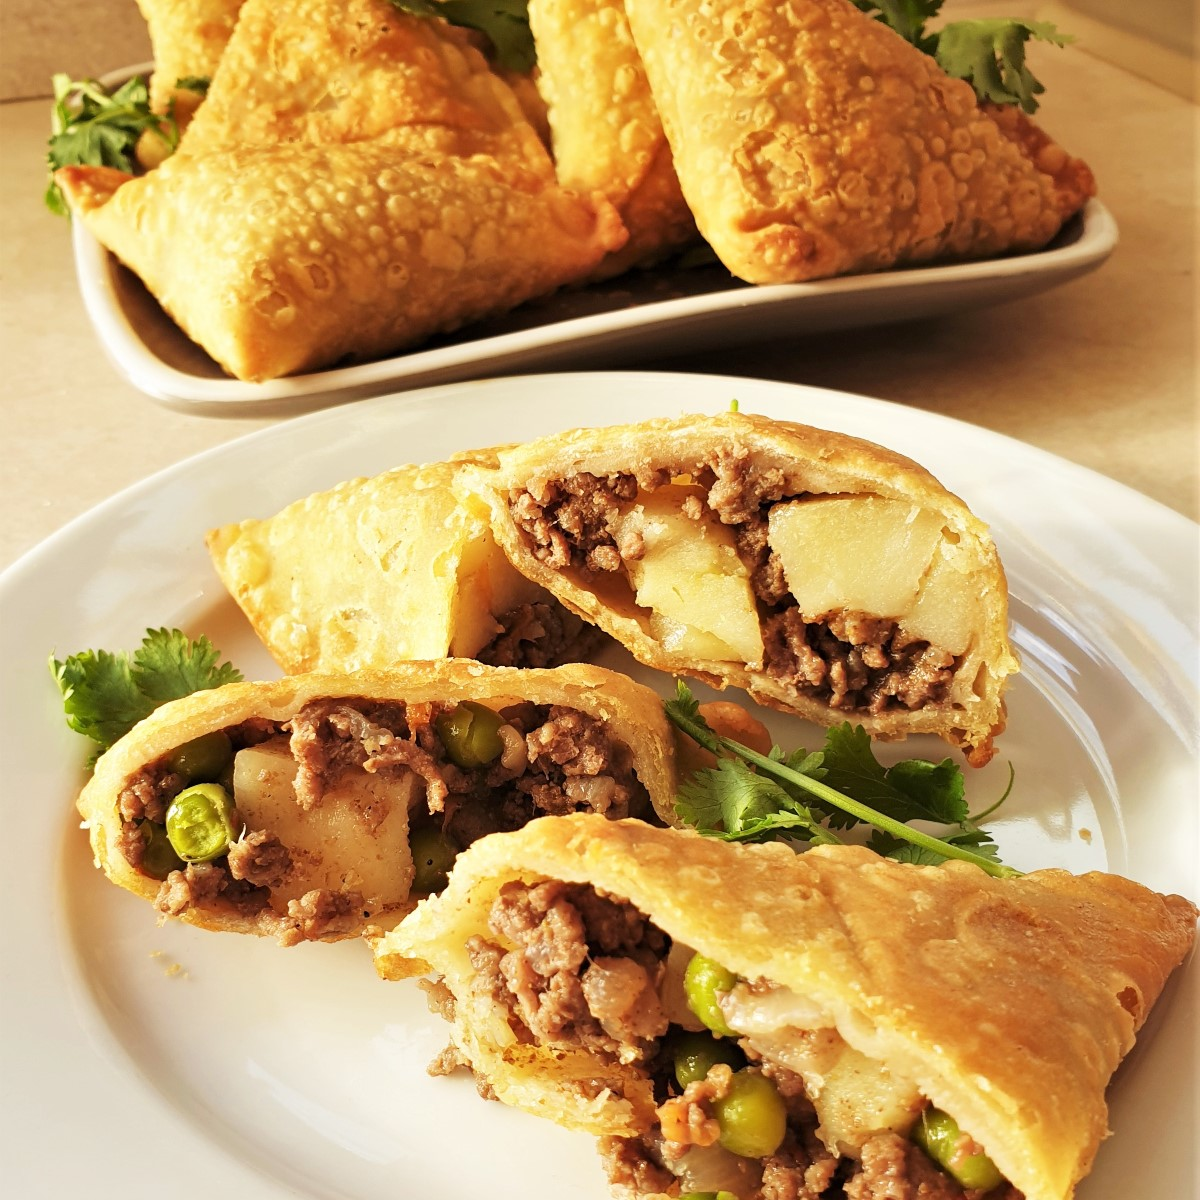 Two beef samosas cut open on a plate, showing the inside.